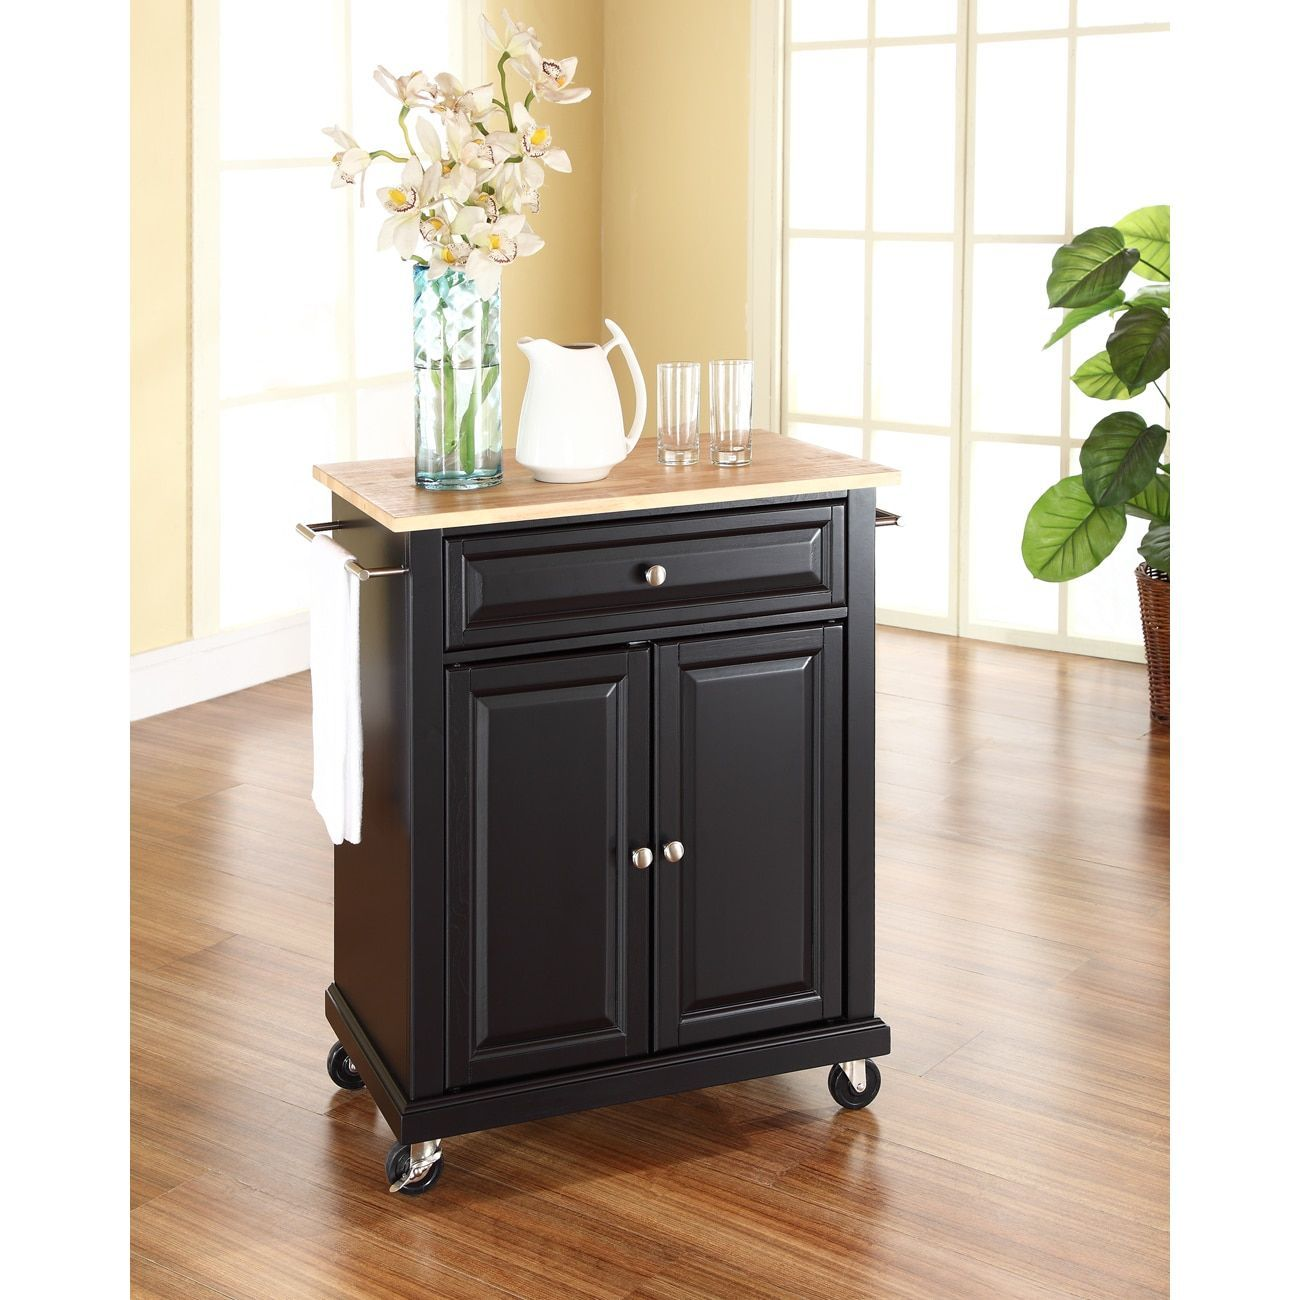 Crosley furniture portable kitchen cartisland with top products